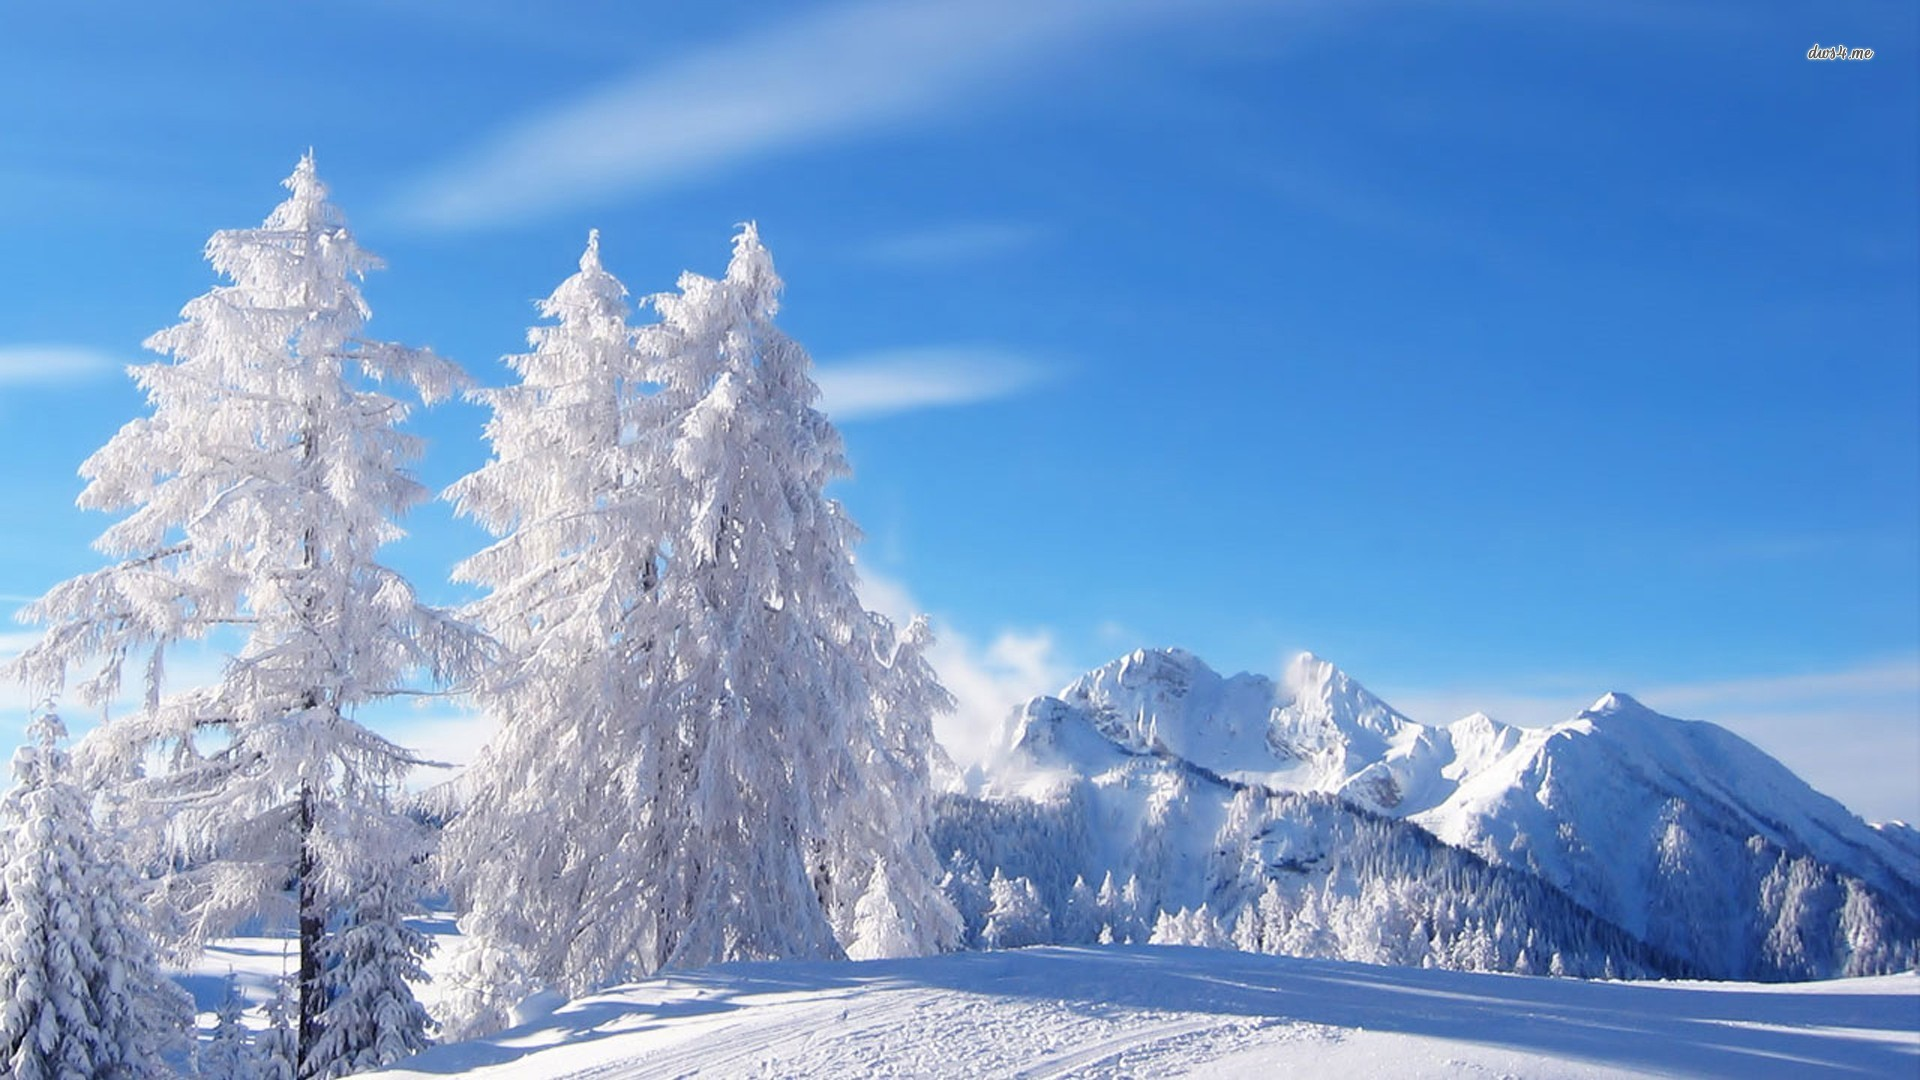 HD Winter Wallpapers 1080p